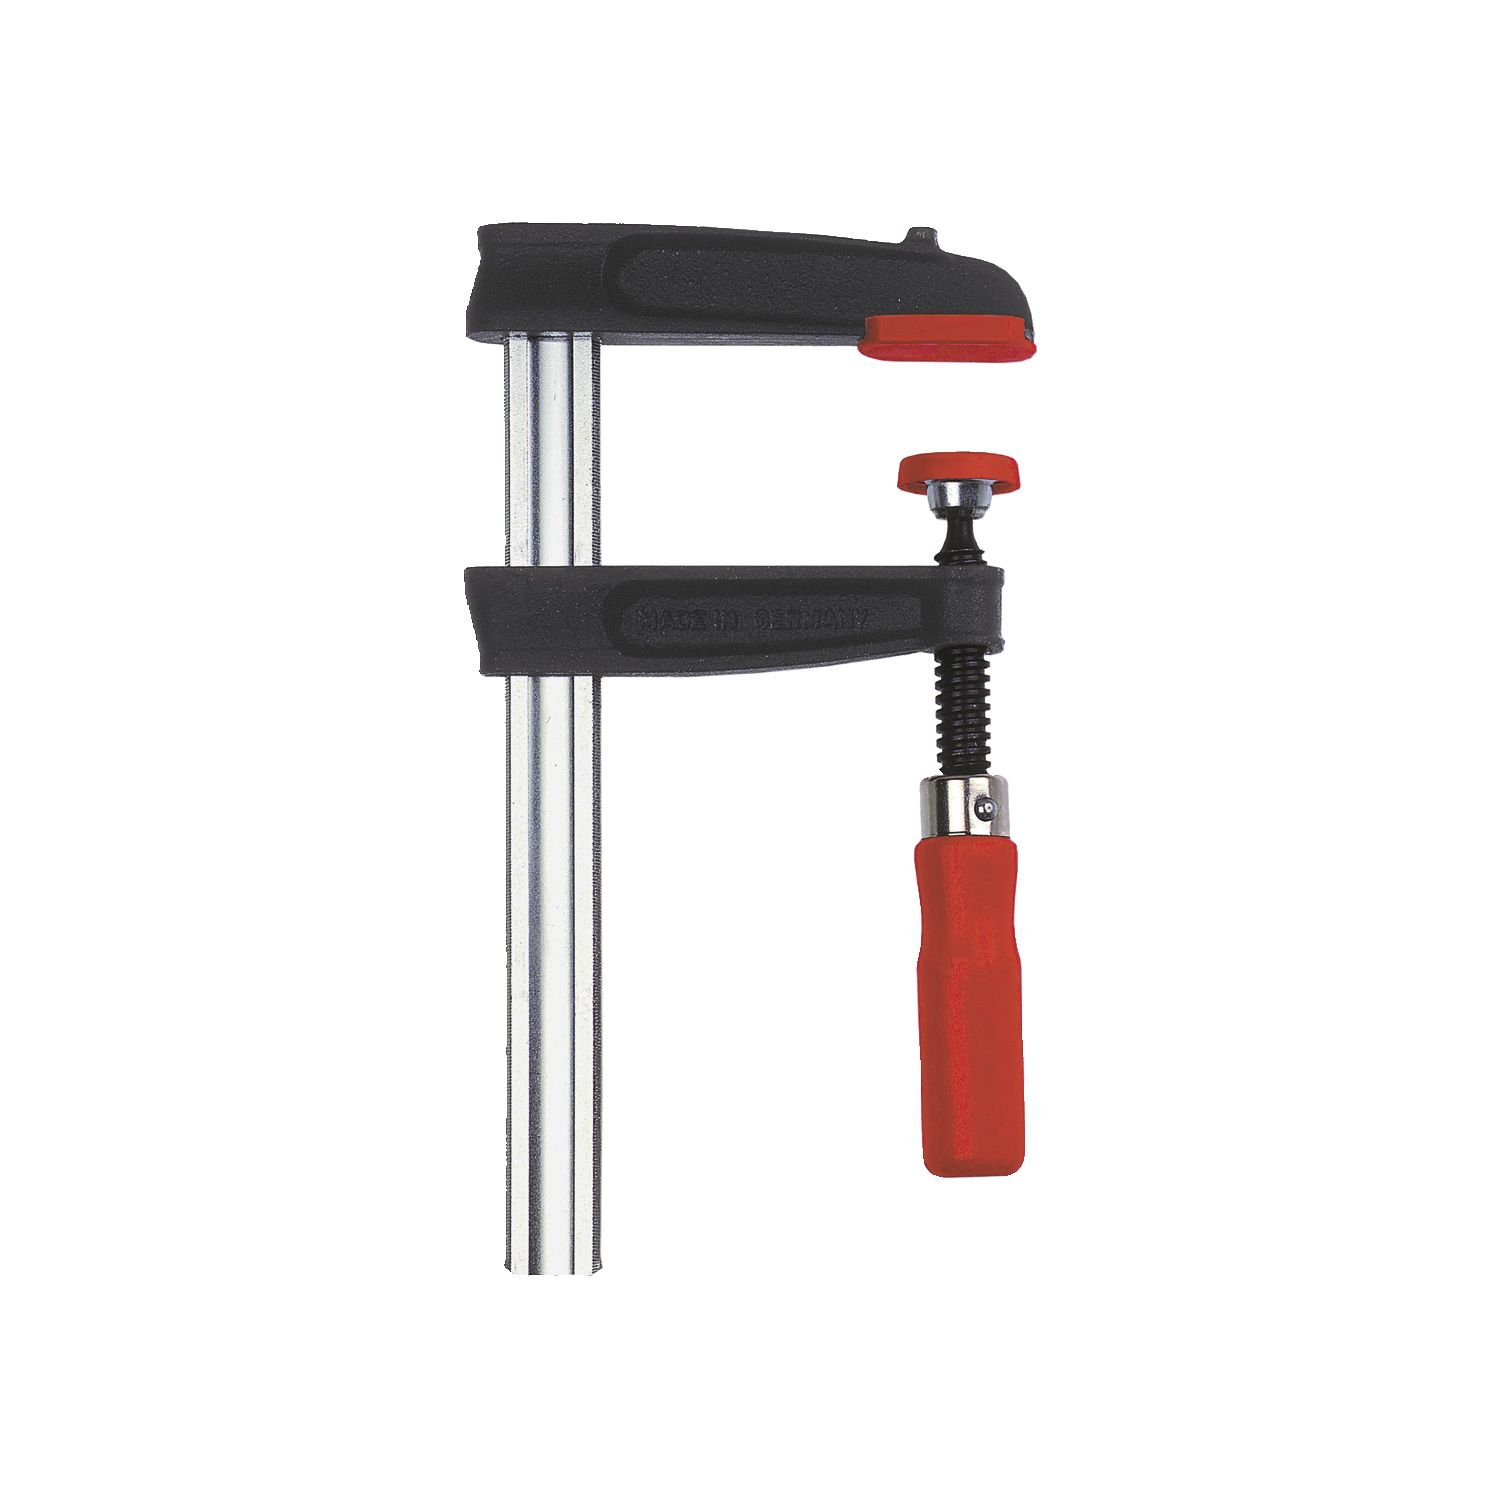 Bessey TPN16BE Screw Clamp Tpn-Be 6.3In/3.15In of Cast-IRON, Black/Red/Silver by Bessey (Image #1)